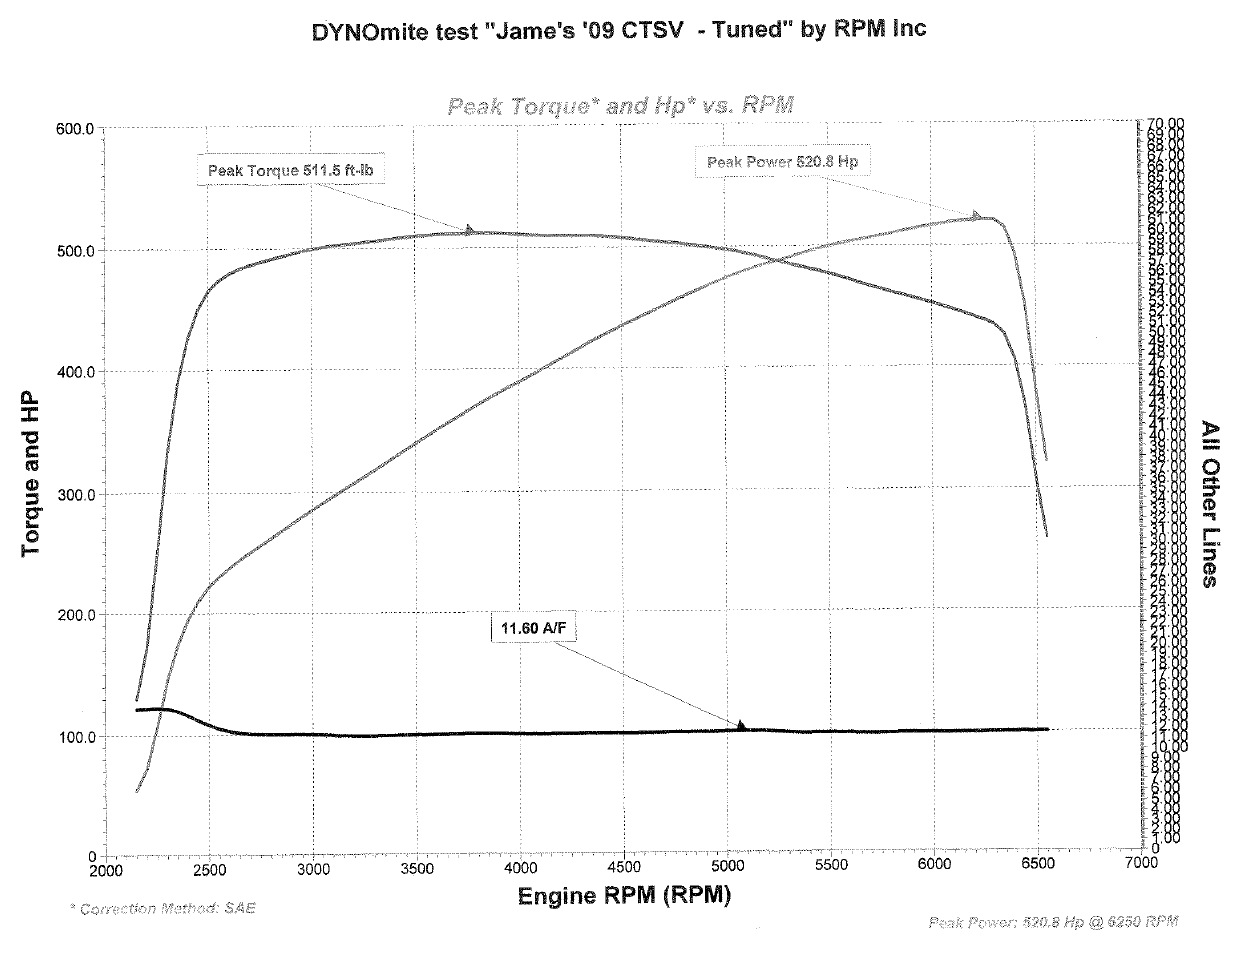 Cadillac Cts V Ecu Tune Dyno Results Graphs Hosepower